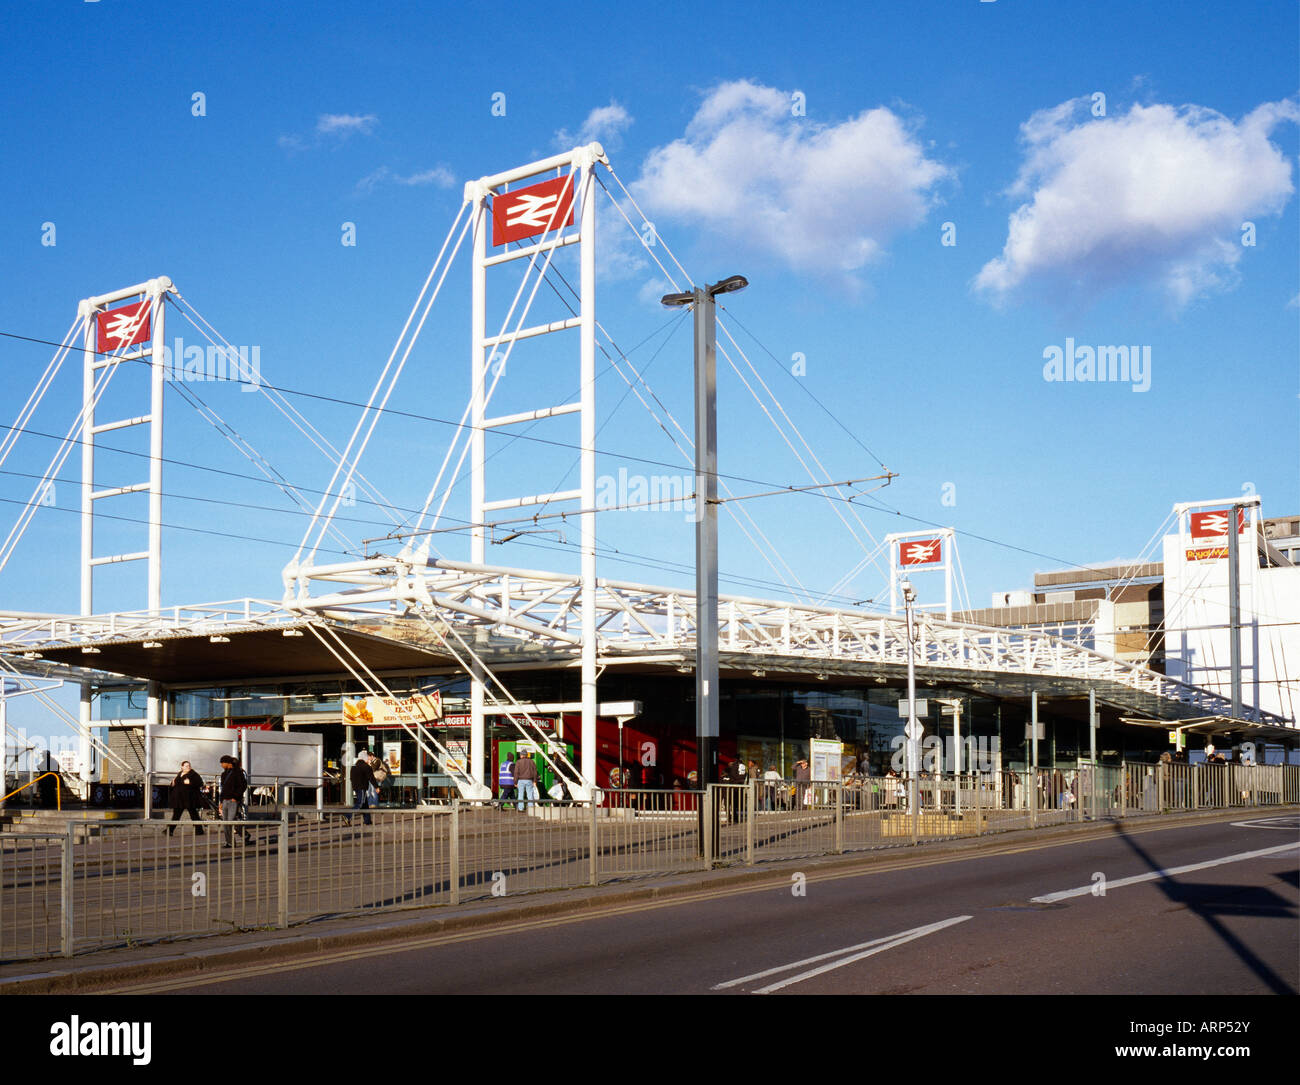 East Croydon British Railway Station Croydon London England UK - Stock Image